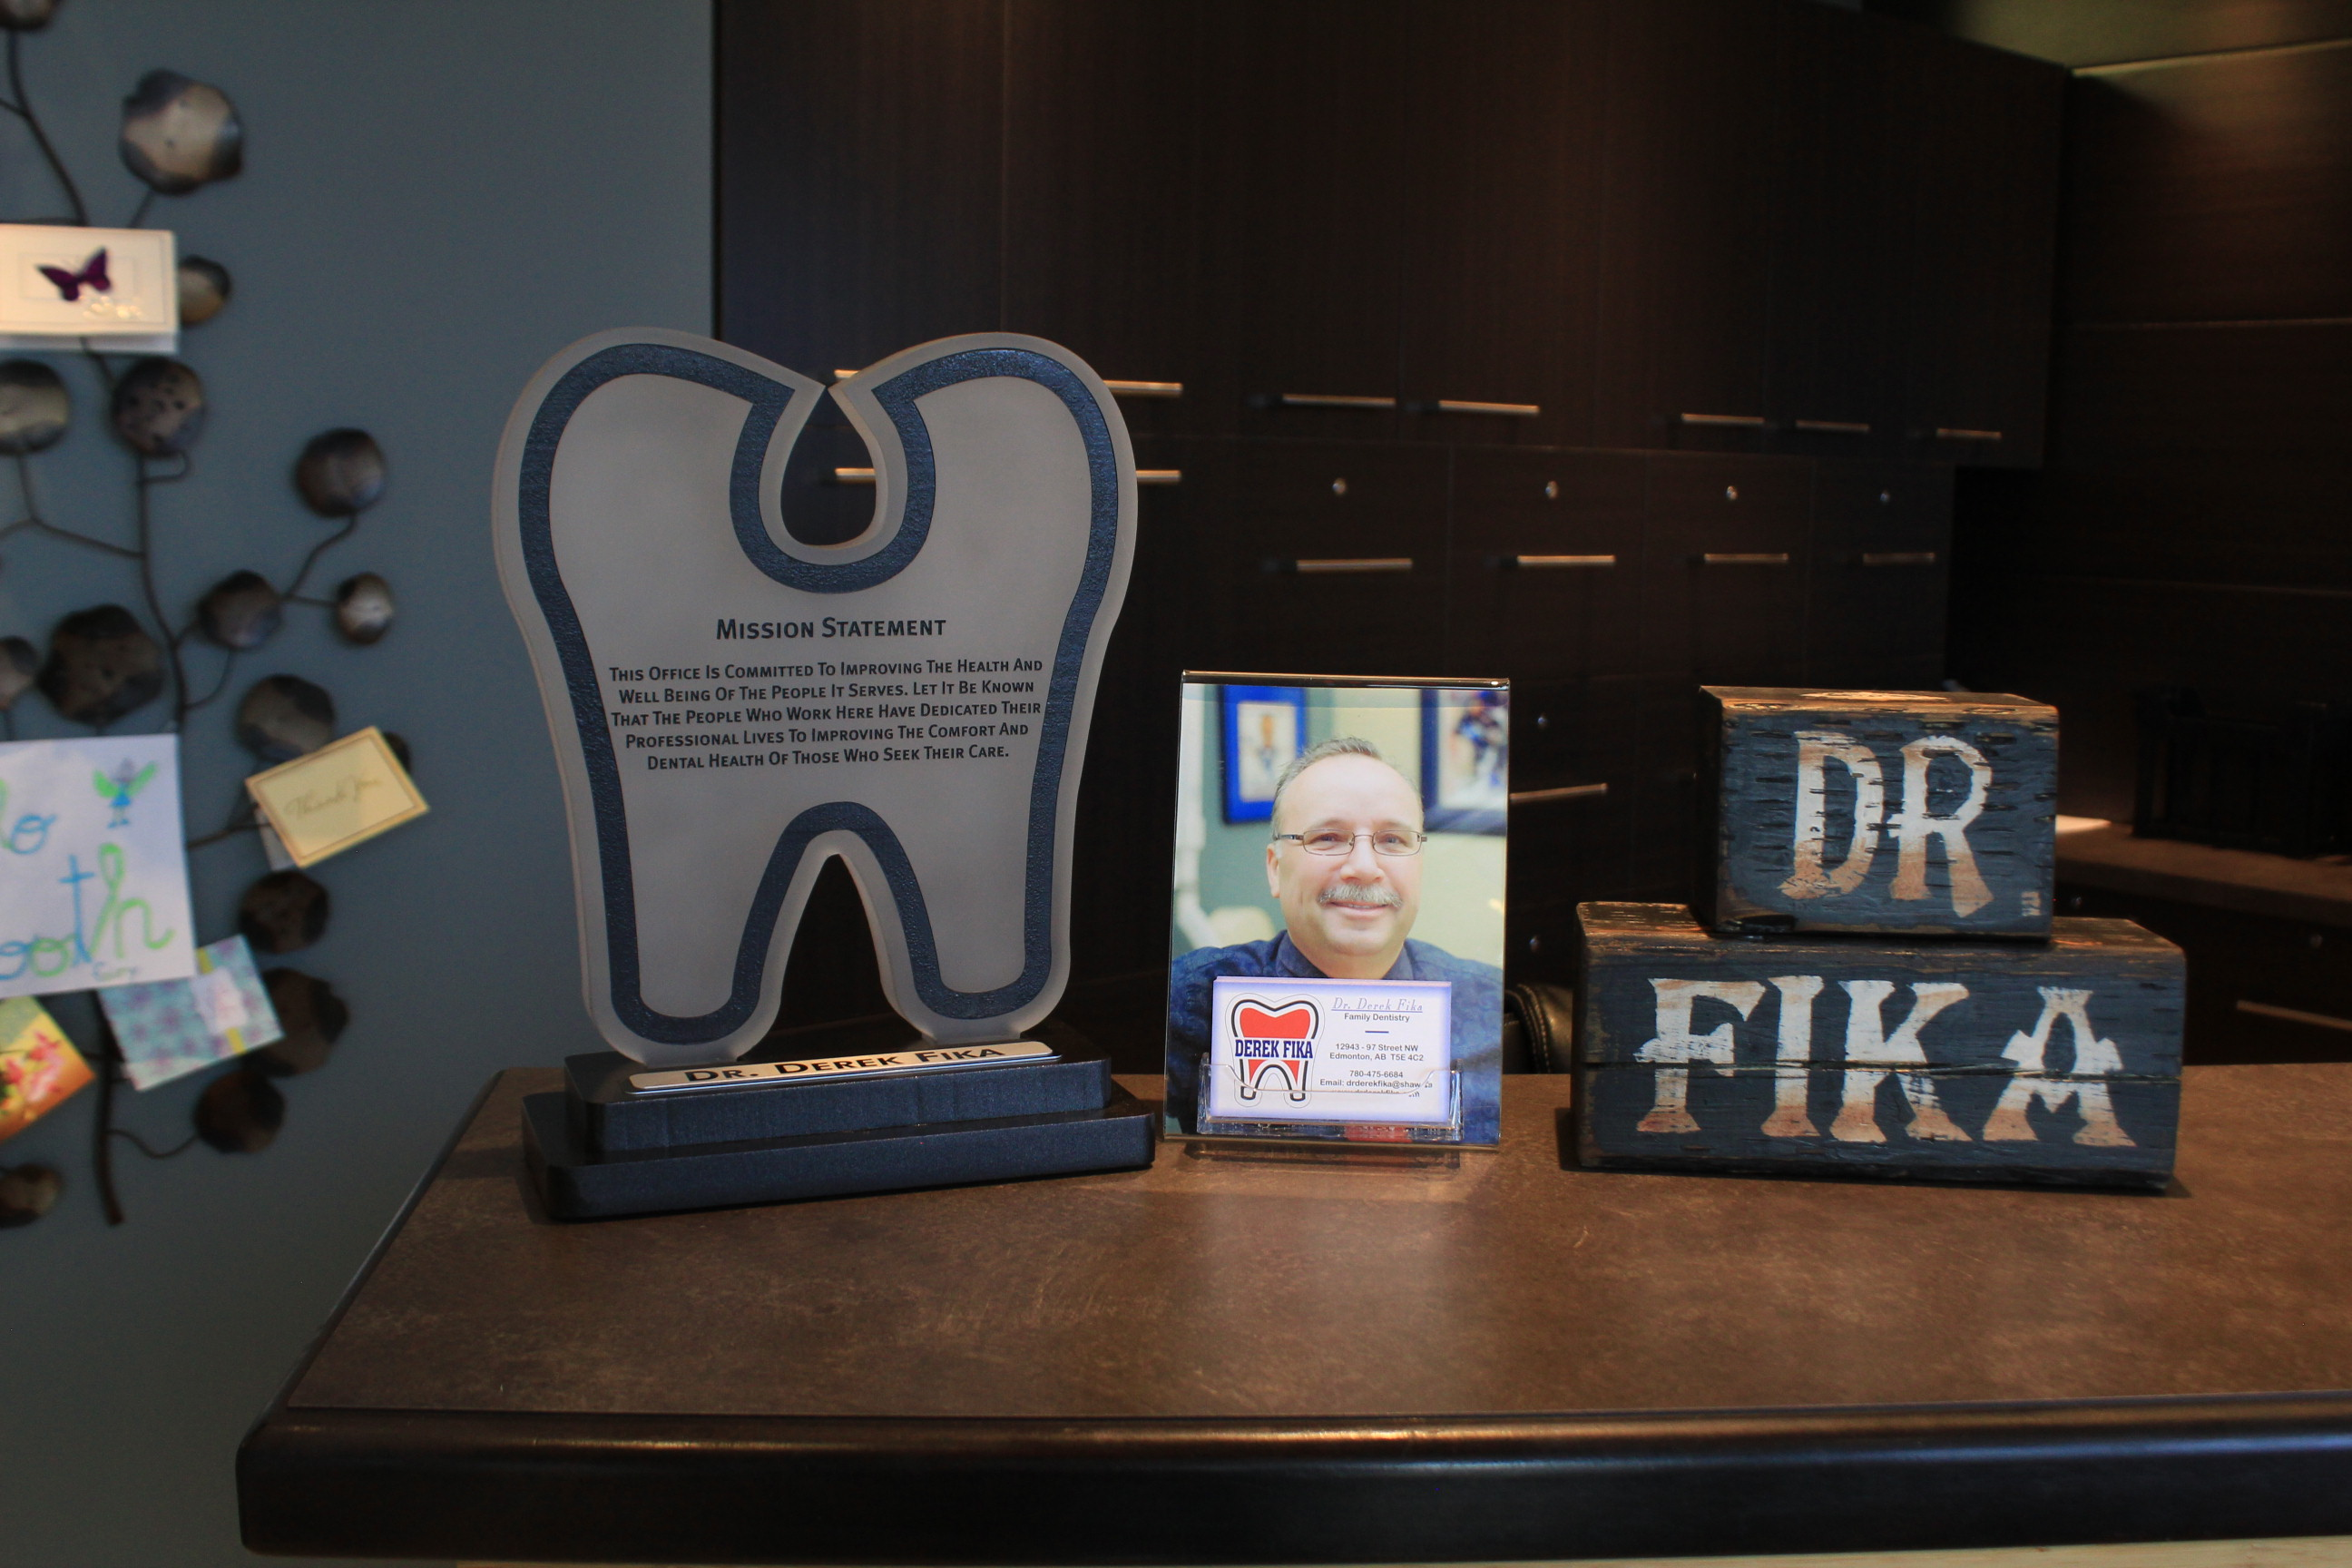 Dr. Derek Fika Family Dentistry and Cosmetic Dentistry in Edmonton, Alberta T5E4C2